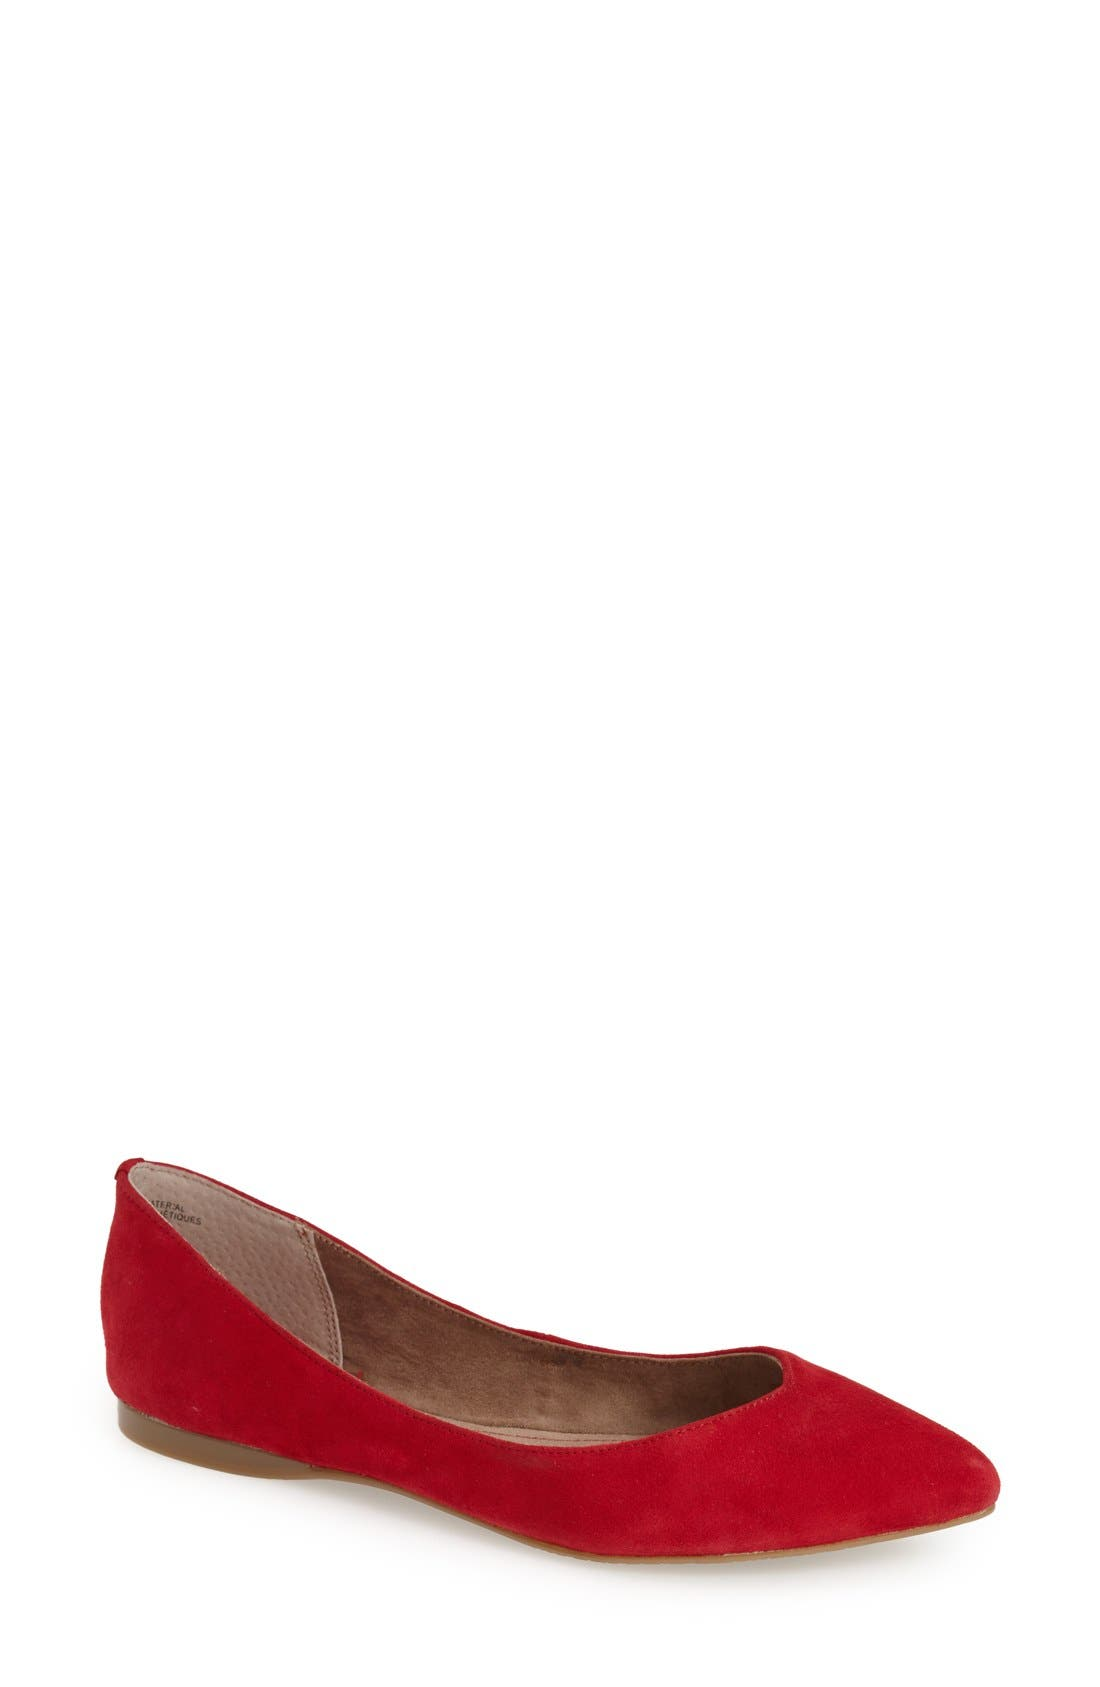 'Moveover' Pointy Toe Leather Flat,                             Main thumbnail 1, color,                             Red Suede